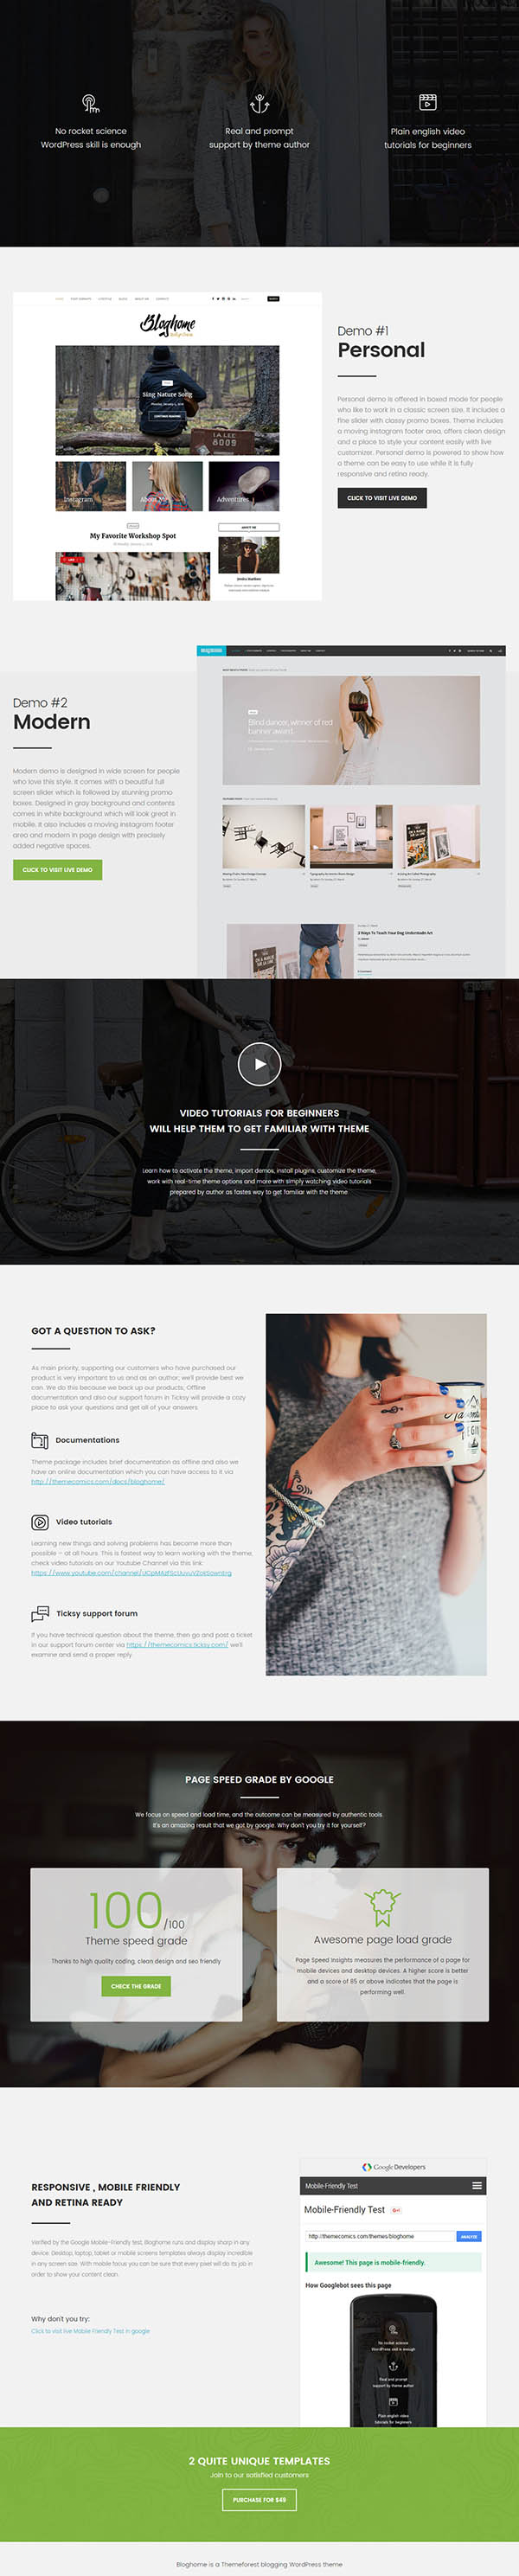 Blog Home – Responsive WordPress Blog Theme